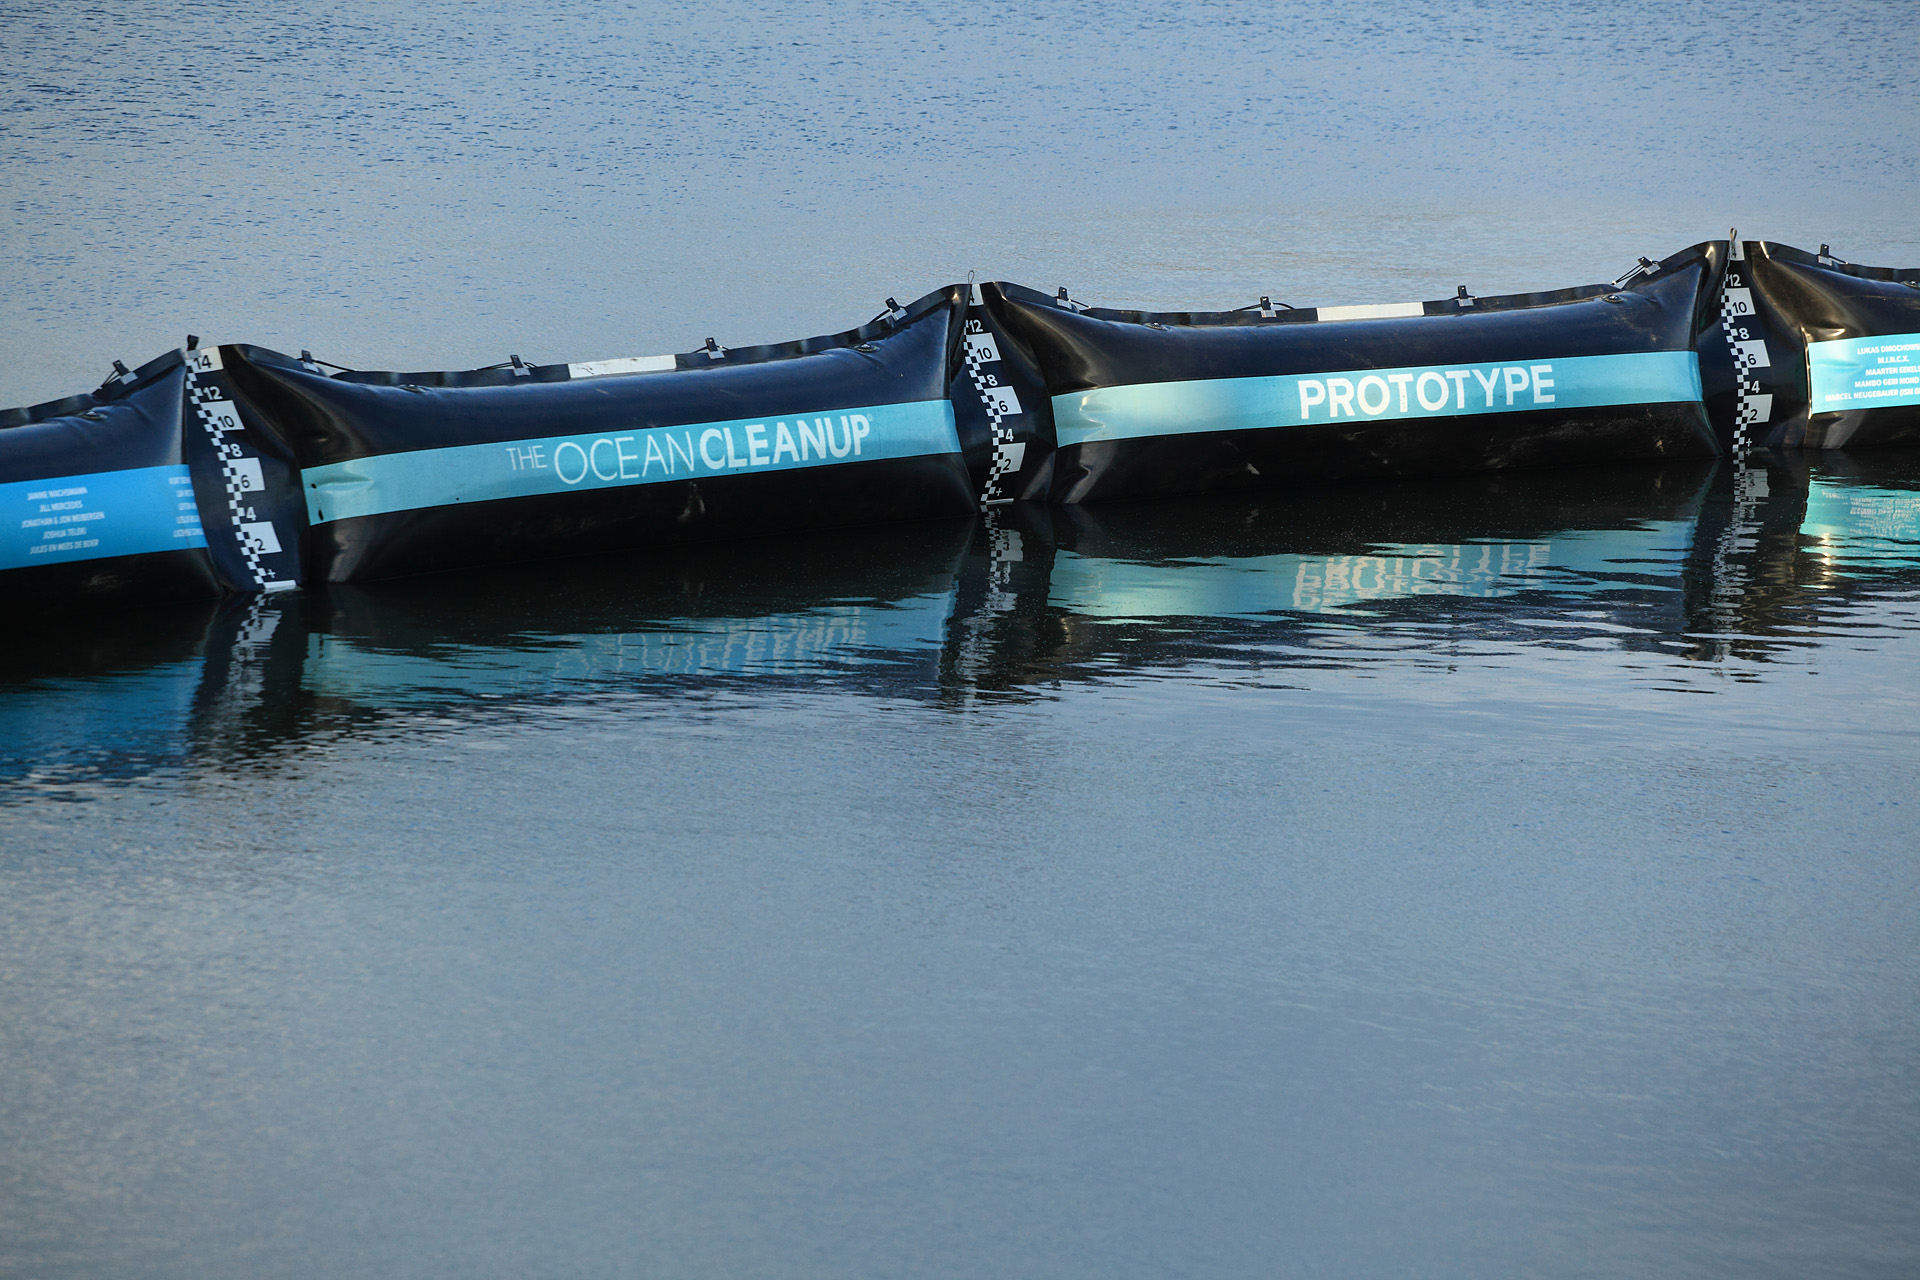 Image from The Ocean Cleanup Media Department